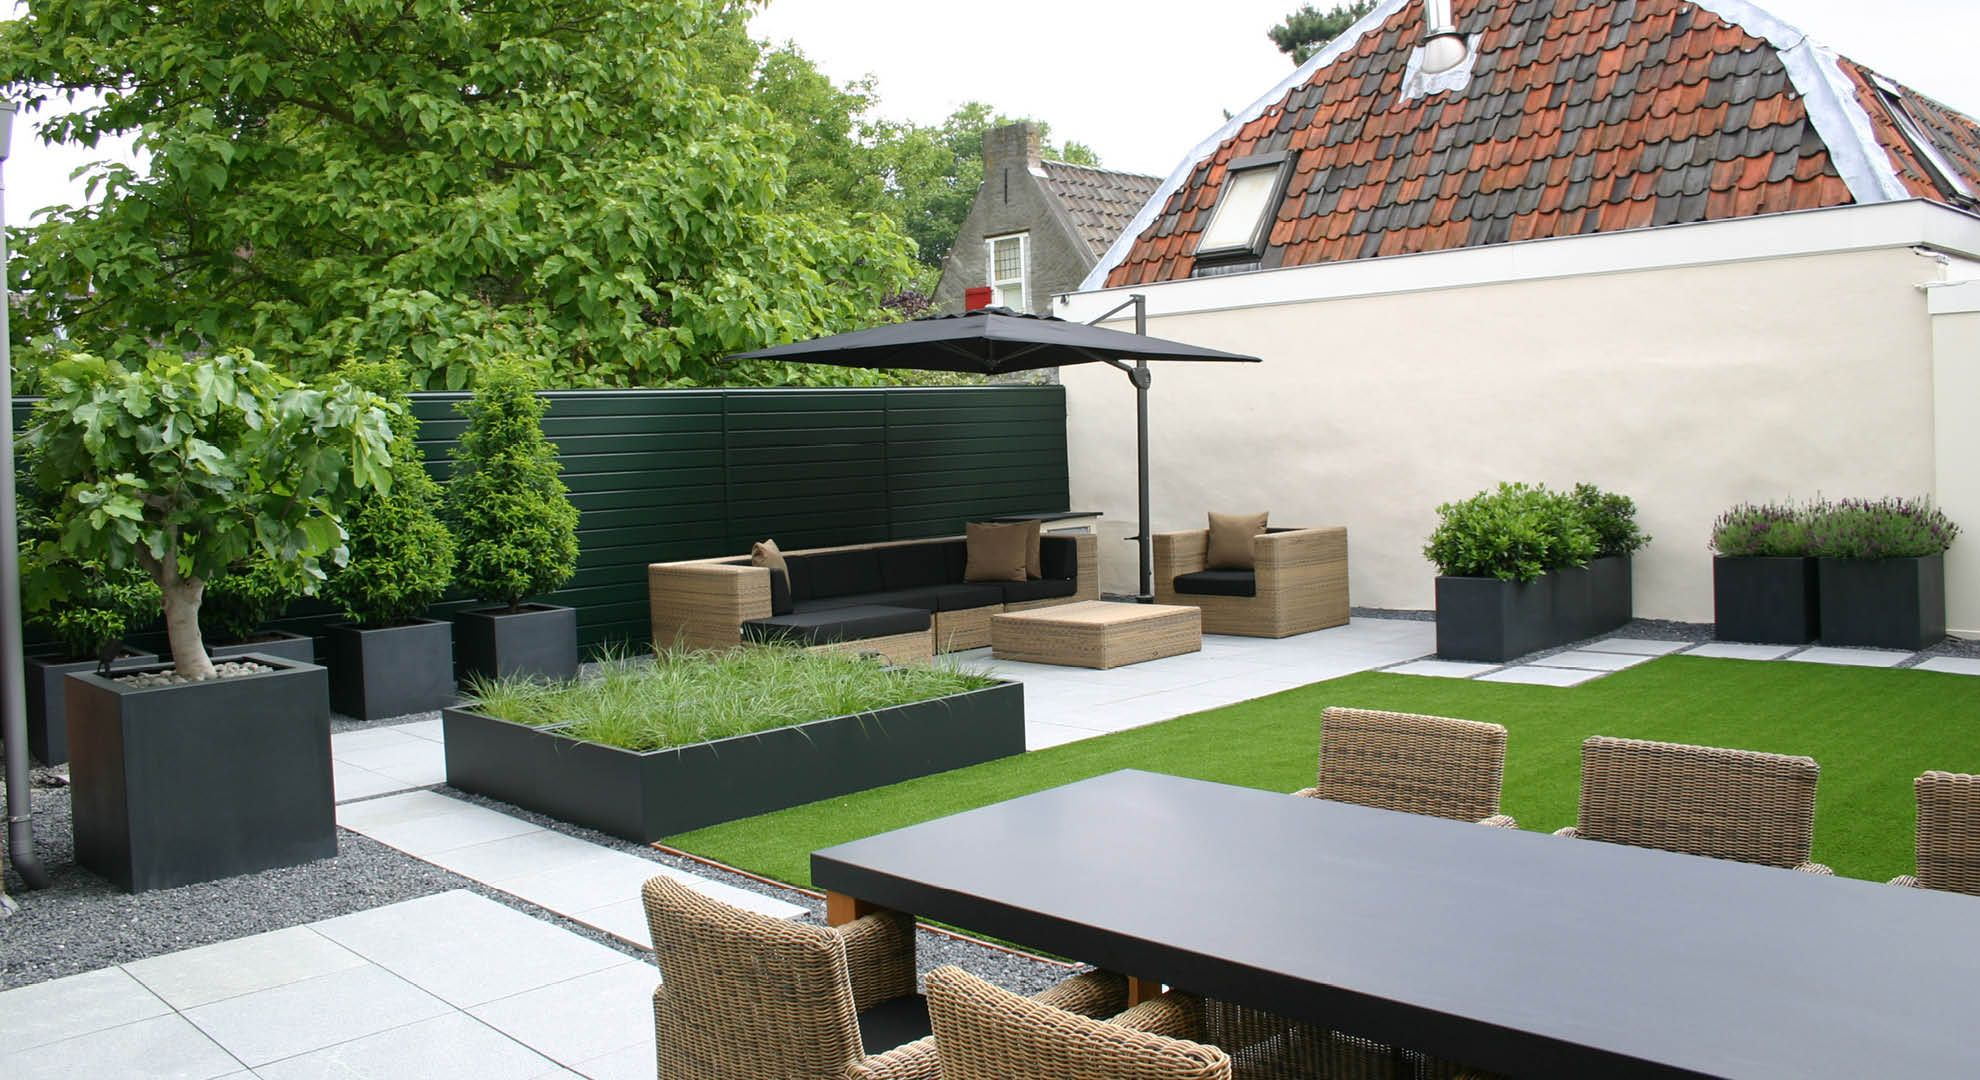 rodenburg tuinen modern dakterras in utrecht met. Black Bedroom Furniture Sets. Home Design Ideas